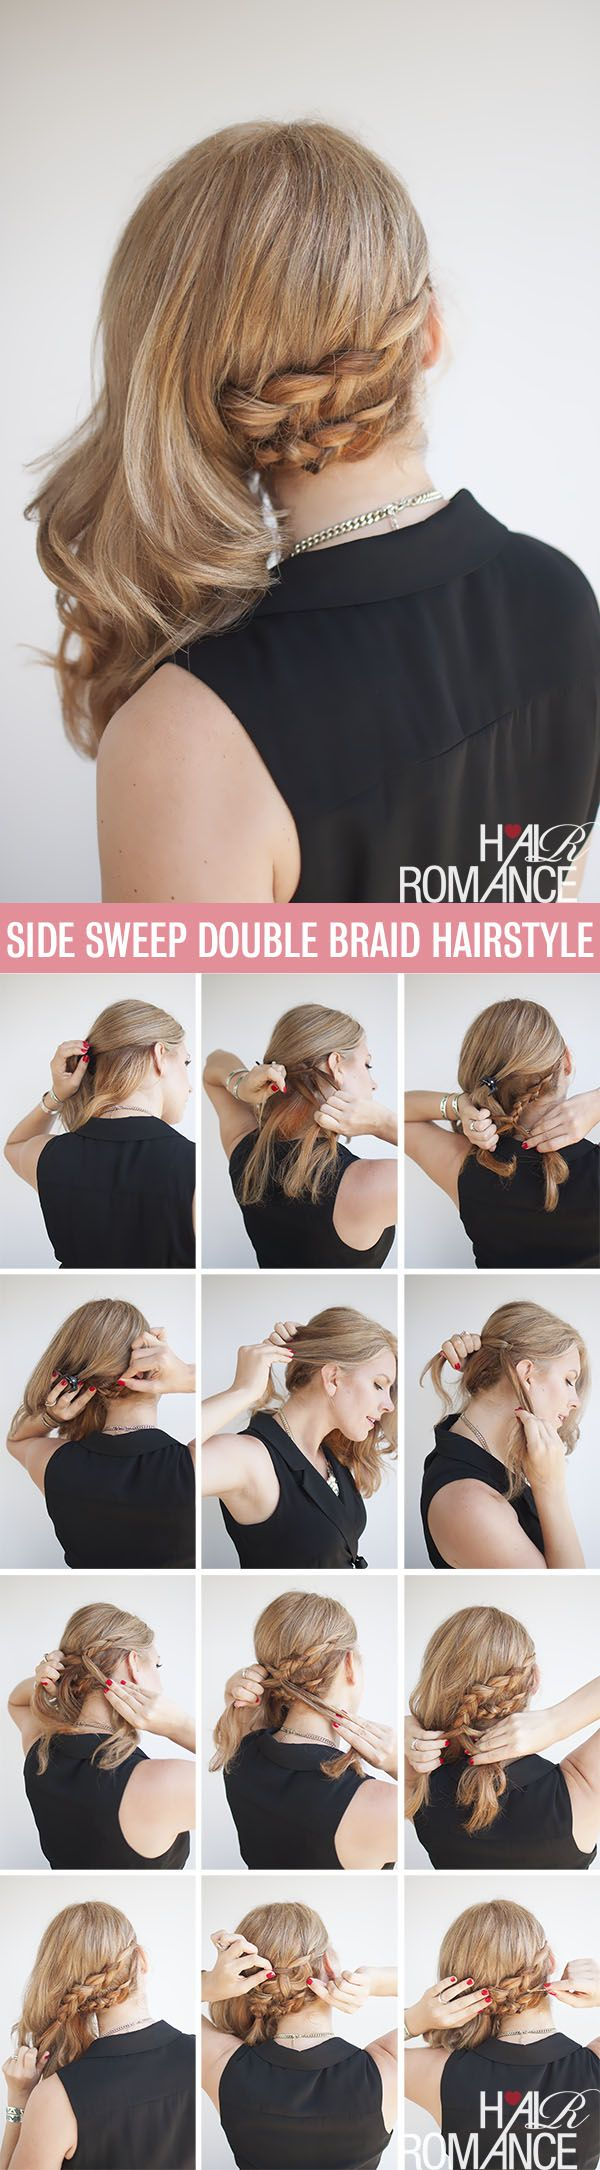 The compromise hairstyle half up and half out braid tutorial